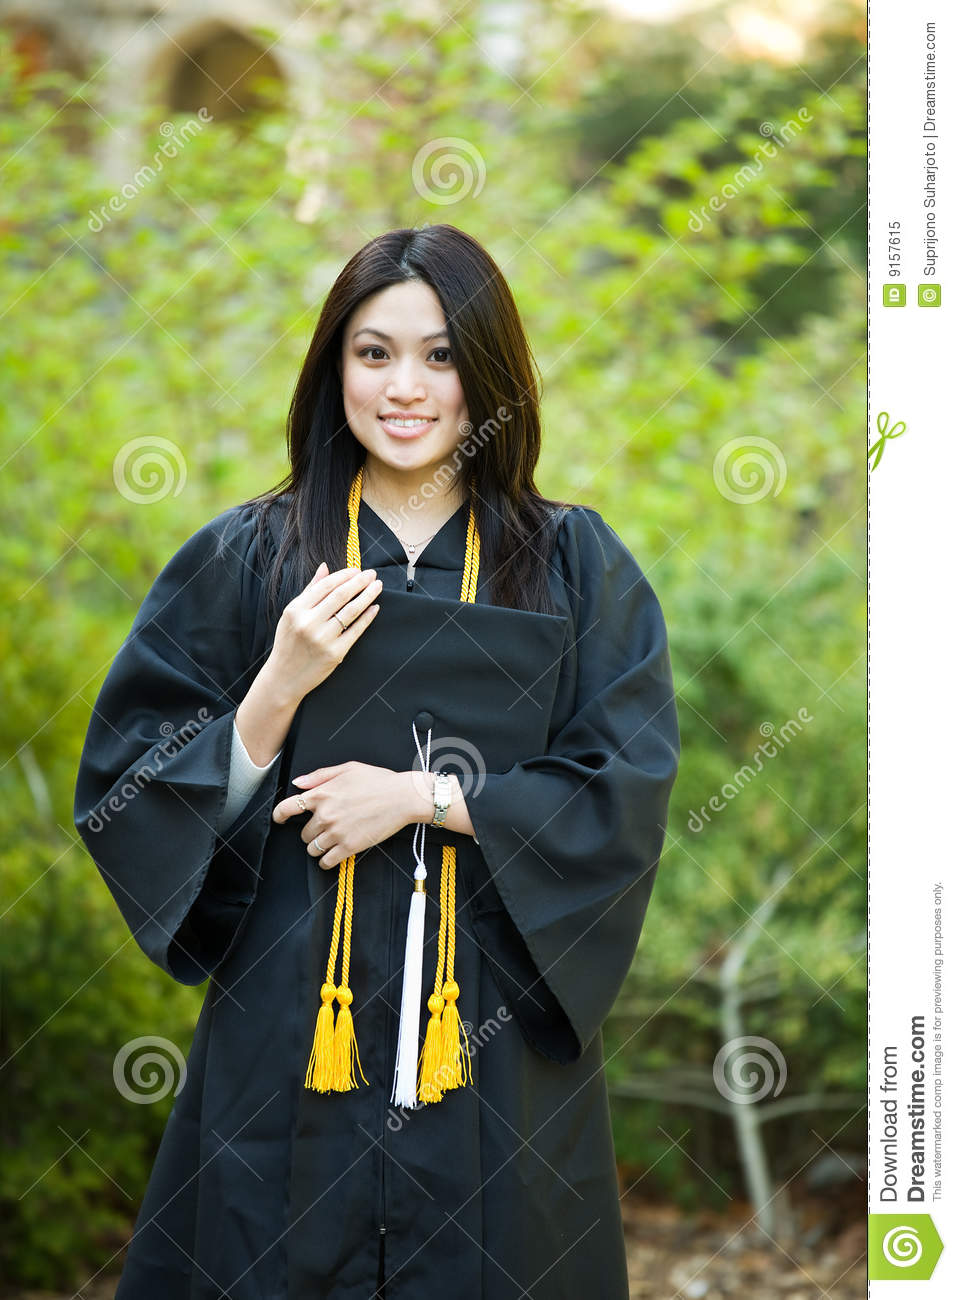 Graduation Girl Royalty Free Stock Photo Image 9157615